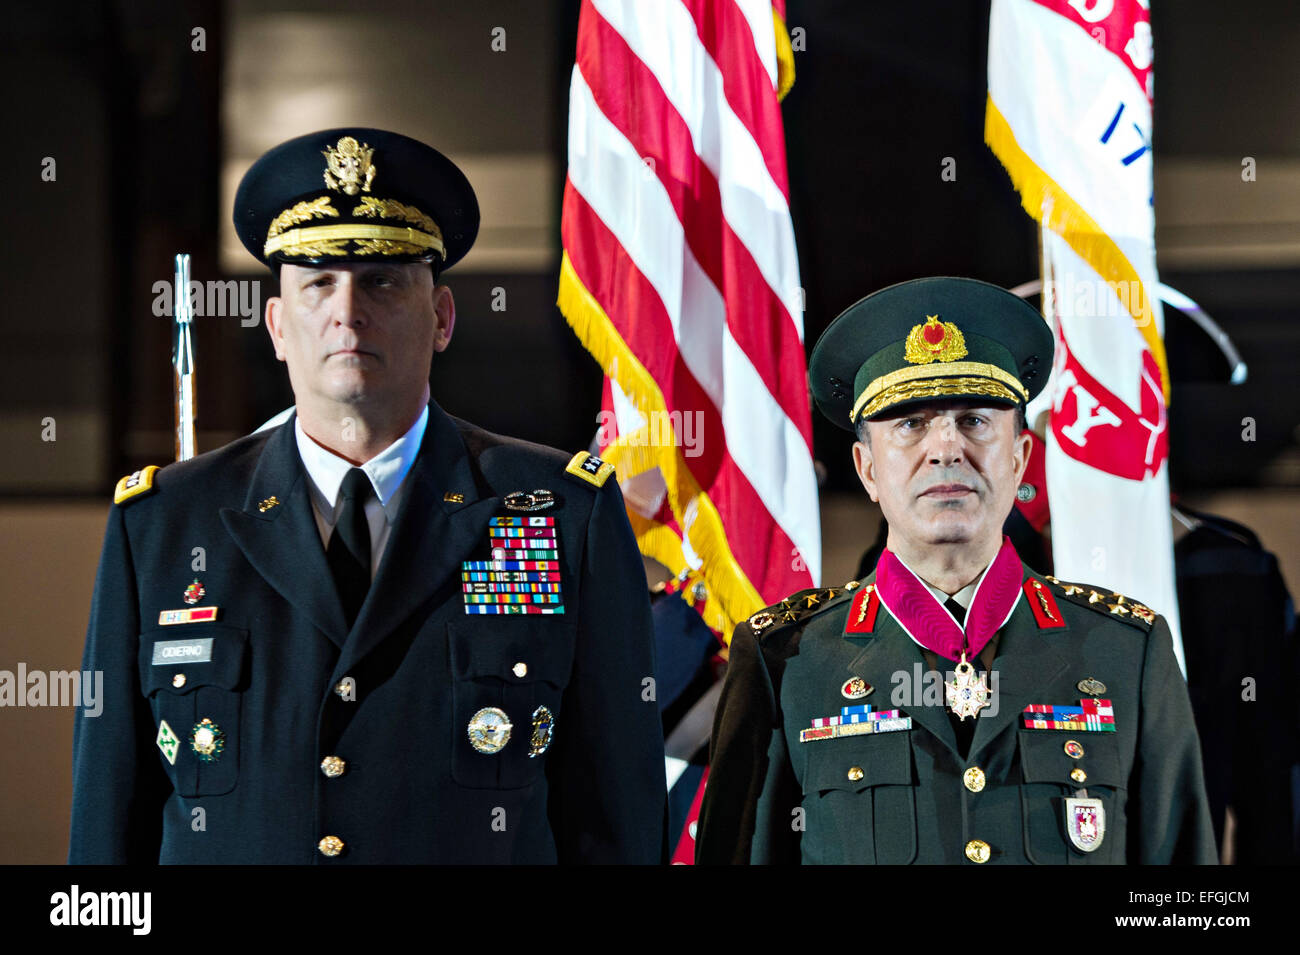 US Army Chief of Staff Gen. Raymond T. Odierno, left, and Gen. Hulusi Akar commander of Turkish Land Forces listen - Stock Image